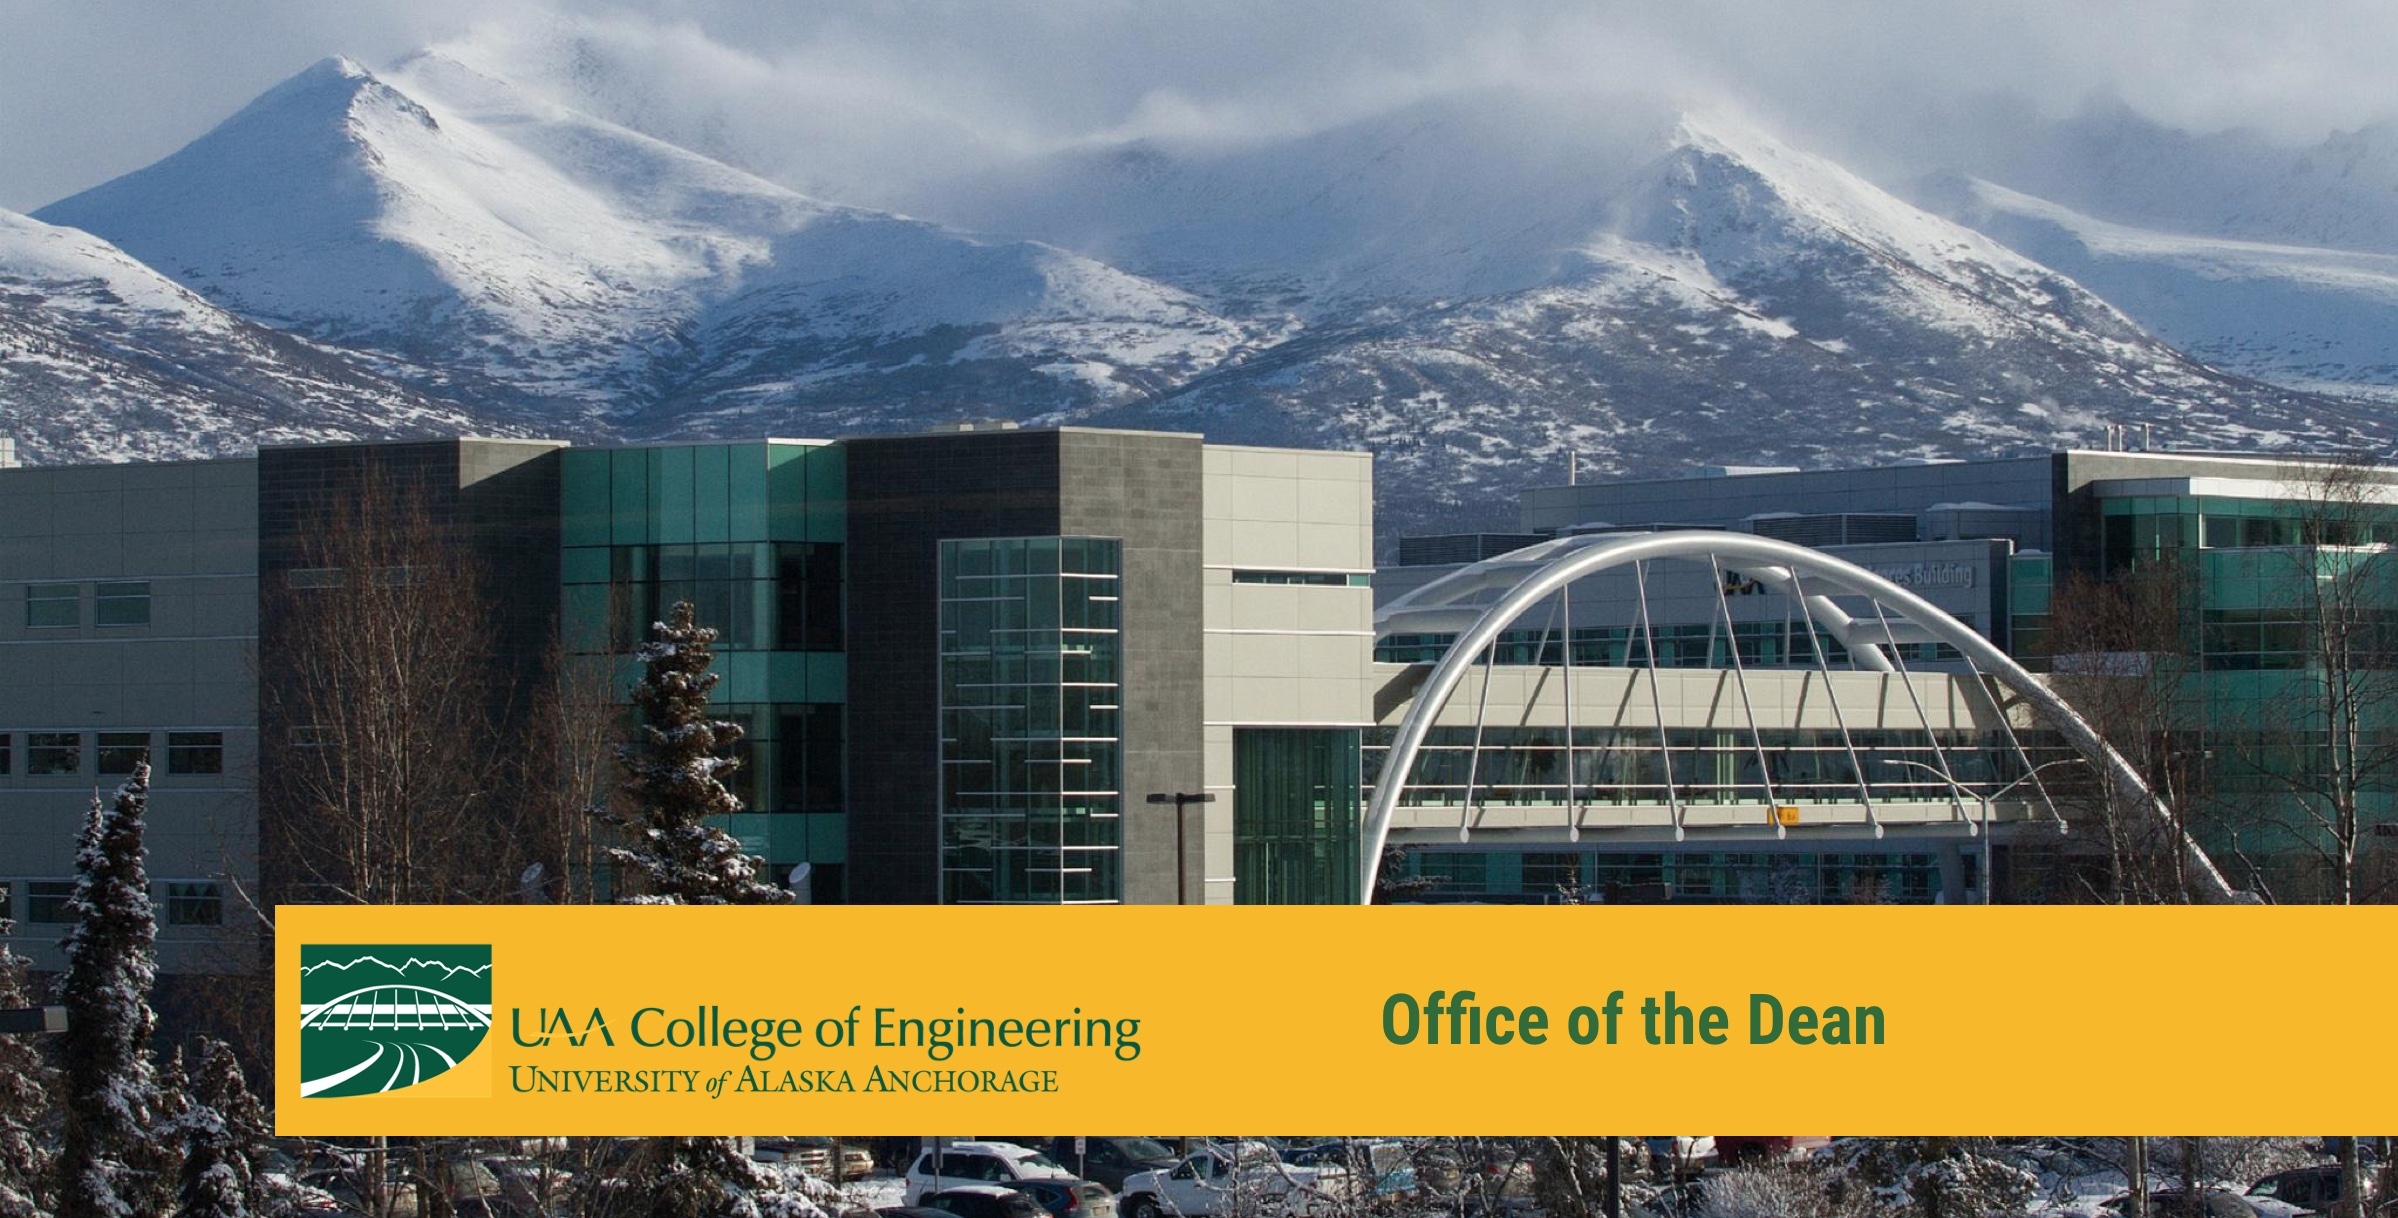 campus buildings with mountains in the background and header text for office of the dean